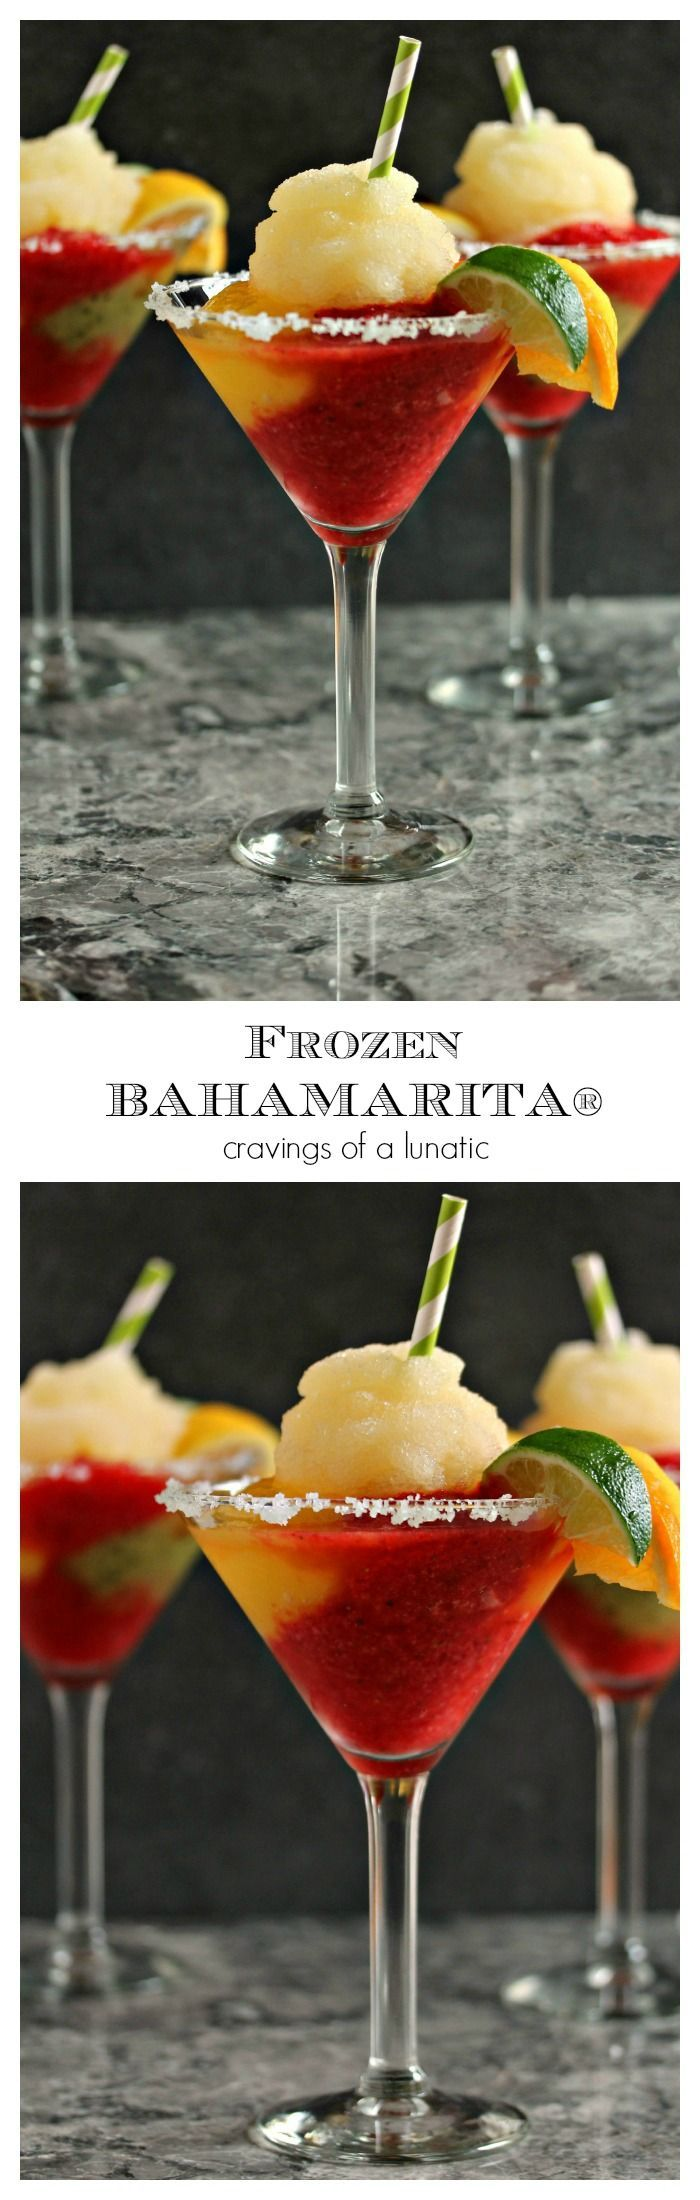 Frozen Bahamarita- This Frozen Margarita recipe is sure to be a hit at your next party.  It's made with Tequila, kiwi, strawberry and mango ices and served with a shot of Cactus Juice Schnapps. There is also a recipe for a virgin version!  #VivaLaRita #ad